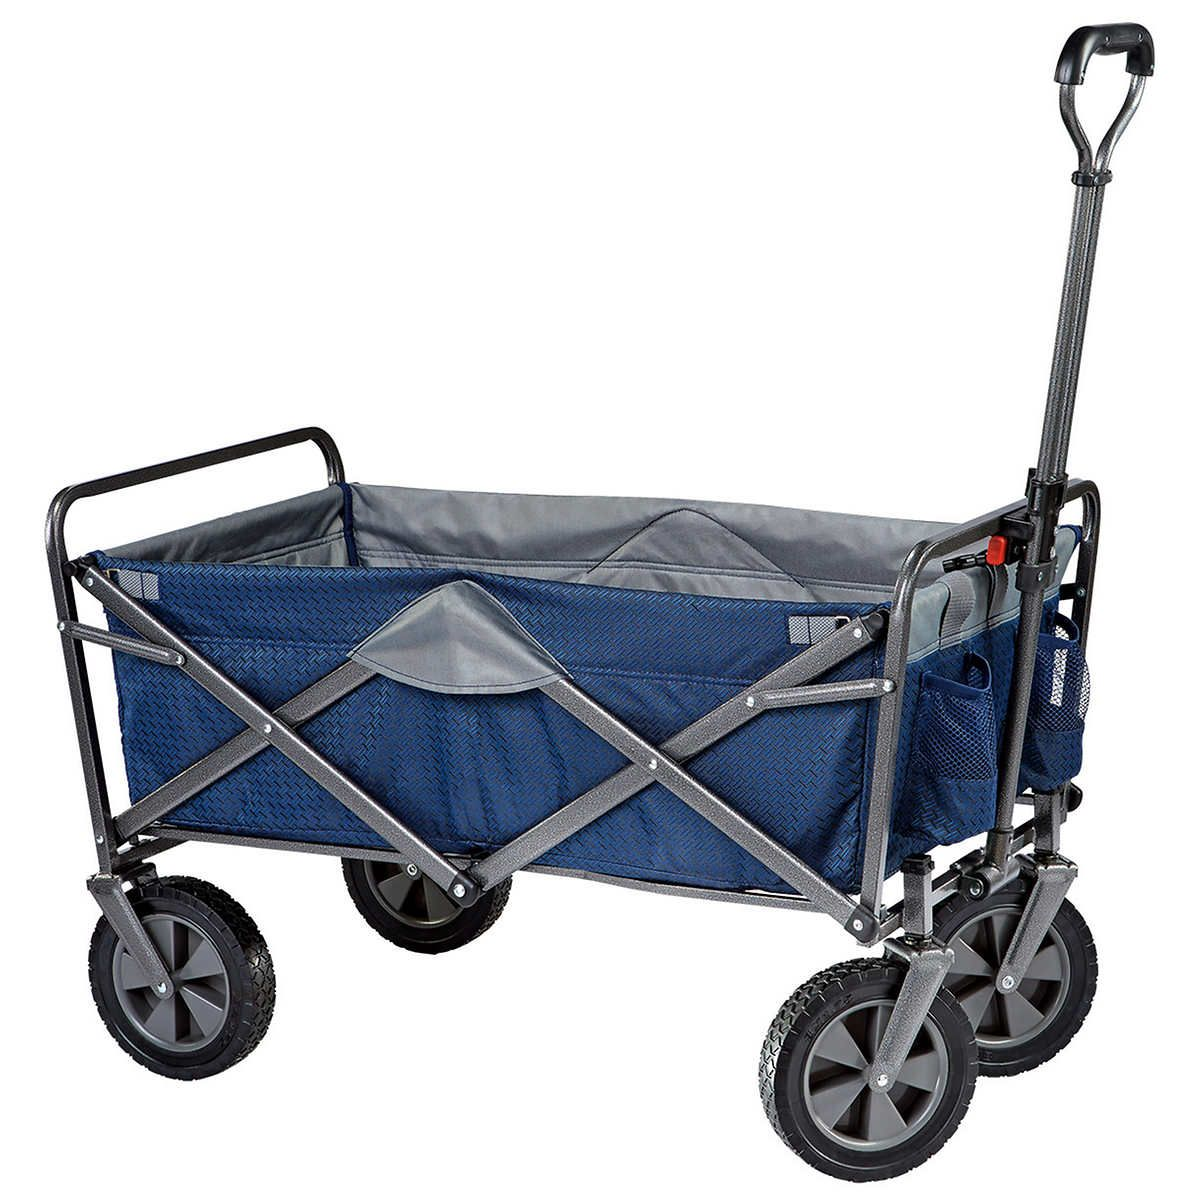 Mac Sports Folding Utility Wagon Utility Wagon Wagon Folding Wagon